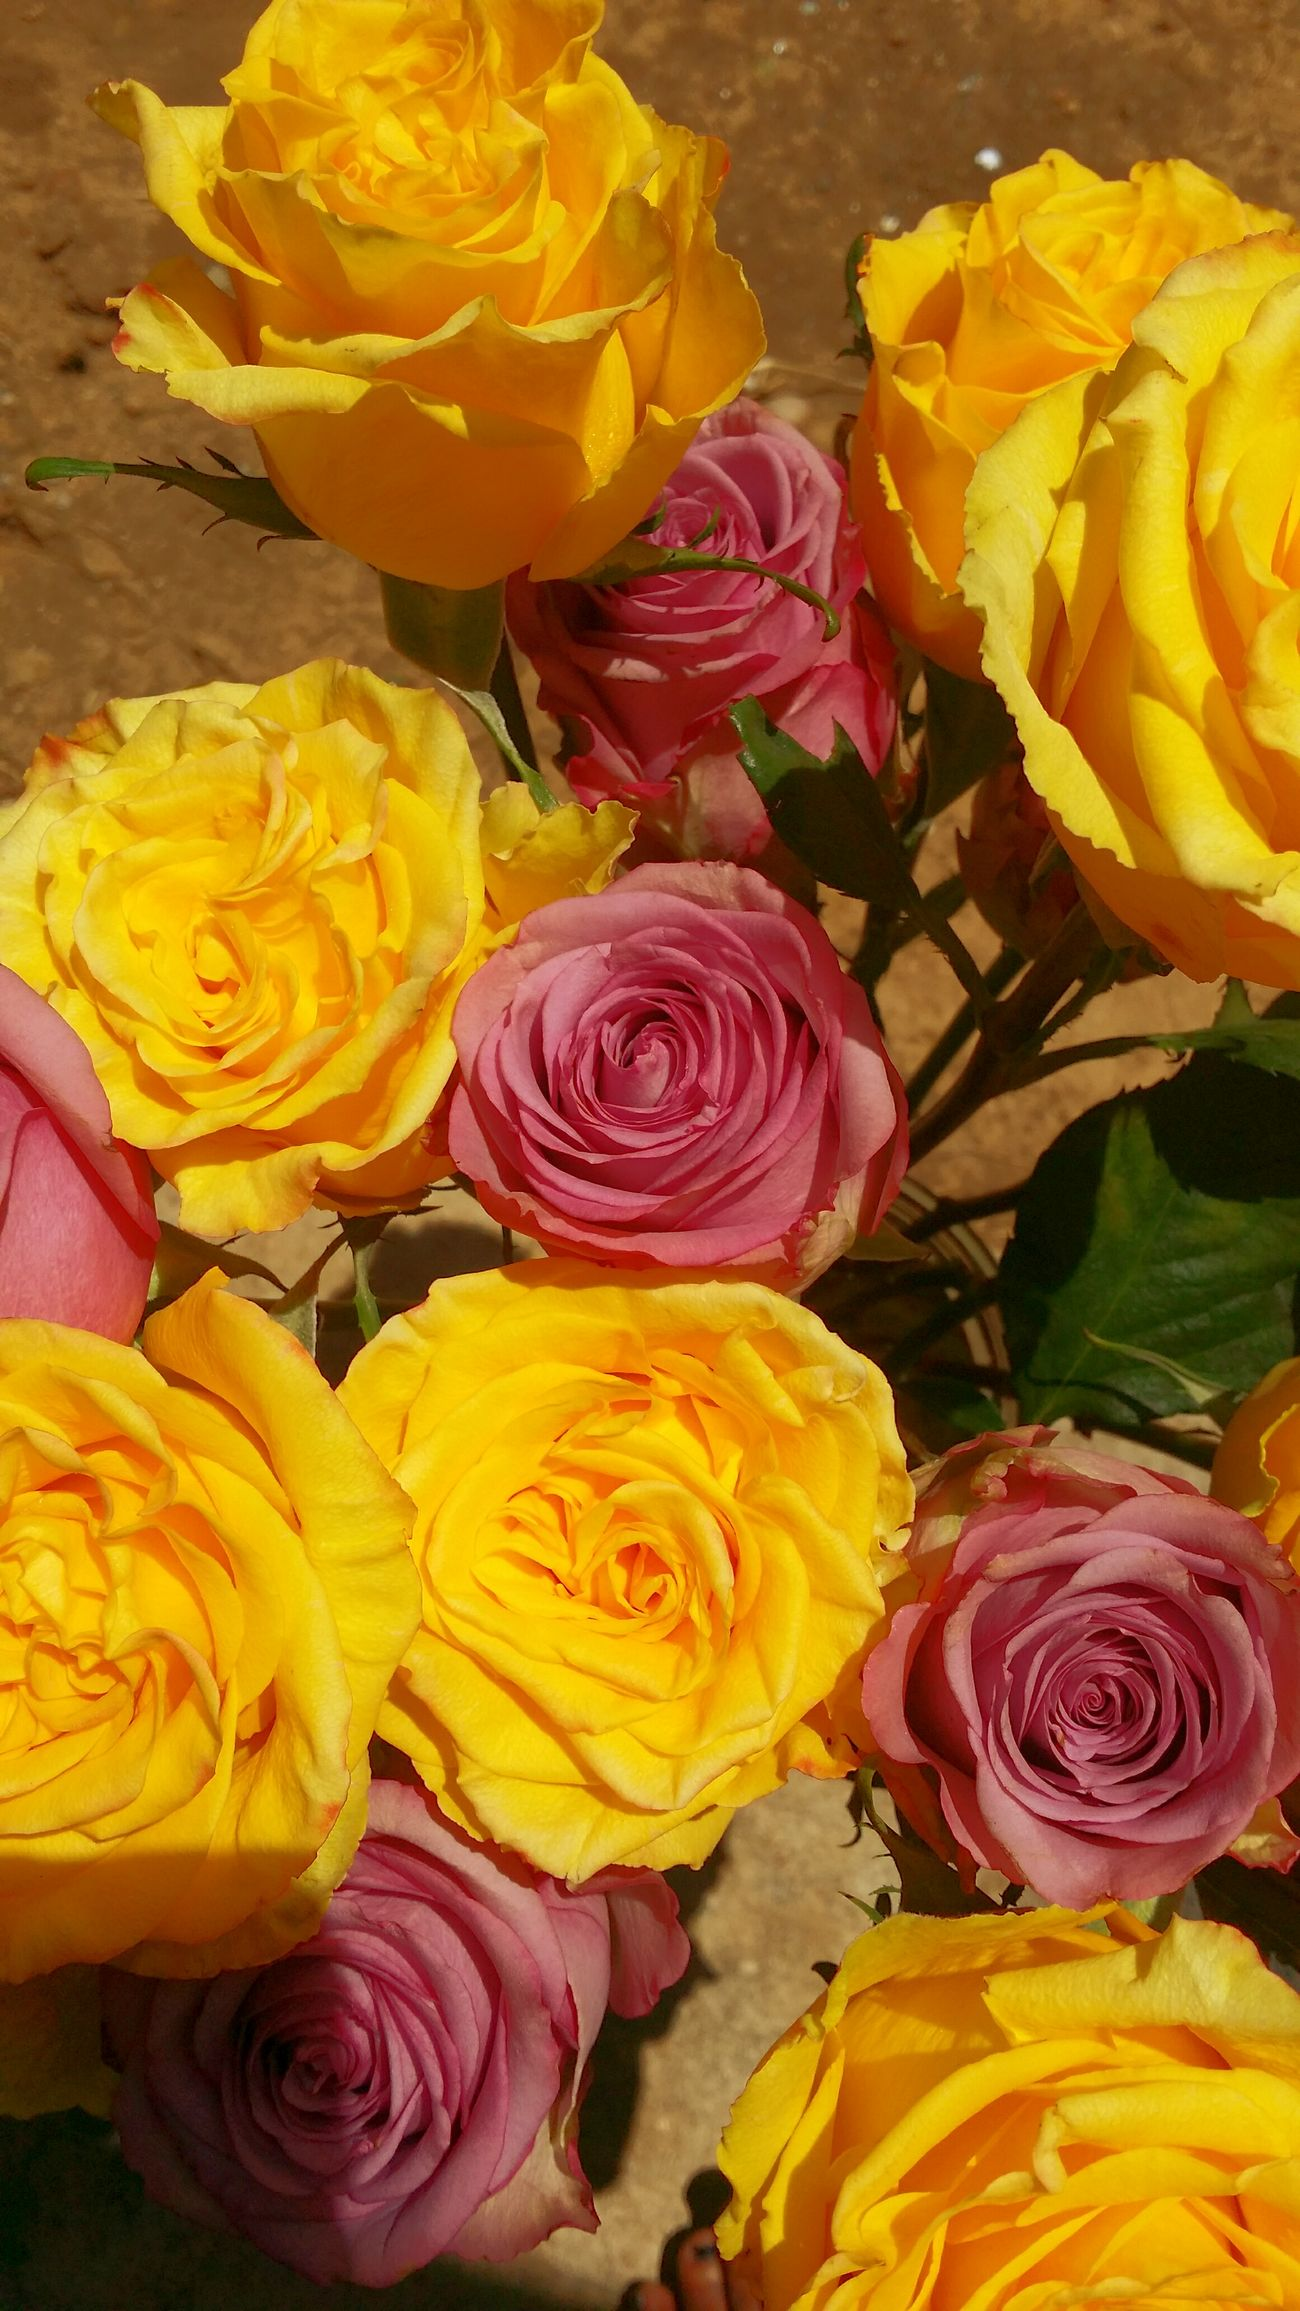 This weeks roses.... Roses🌹 Flowerporn Garden Photography Yellow Rose Purplerose High&exotic CoolWater StonerFlowerChild Flowerchild